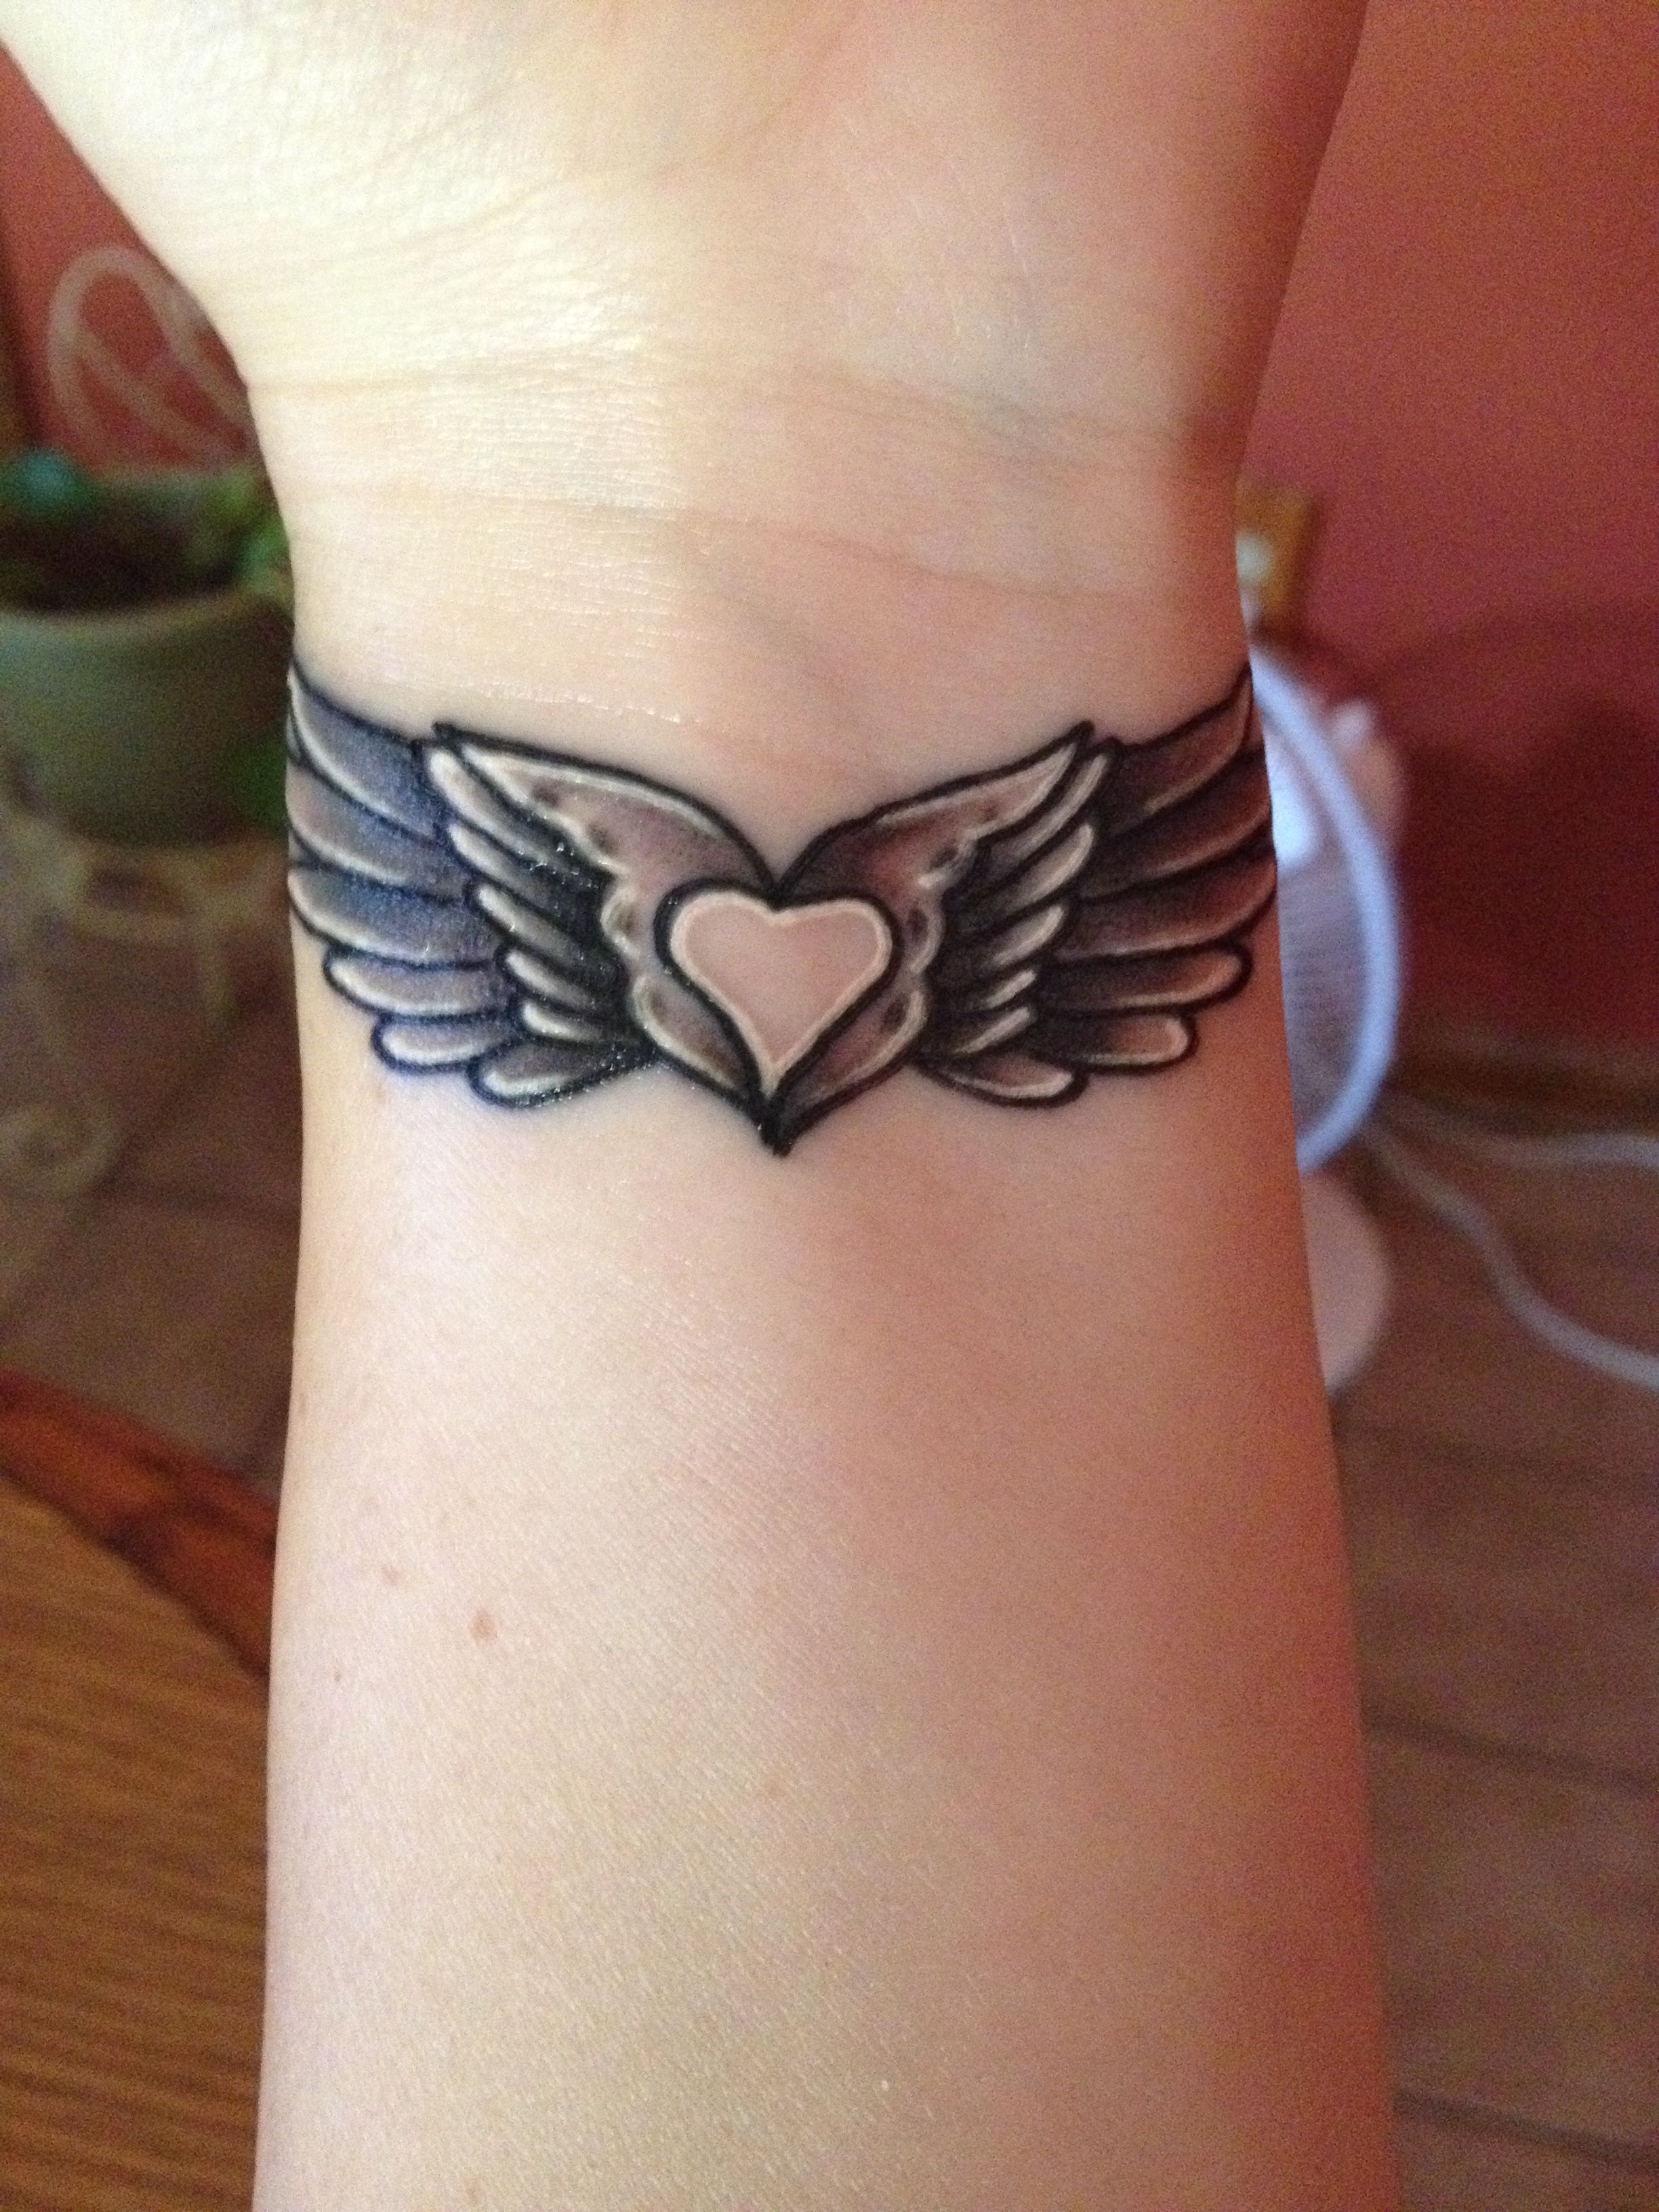 8349c9769 My angel wing tattoo with a heart in the middle | My Style | Wrist ...